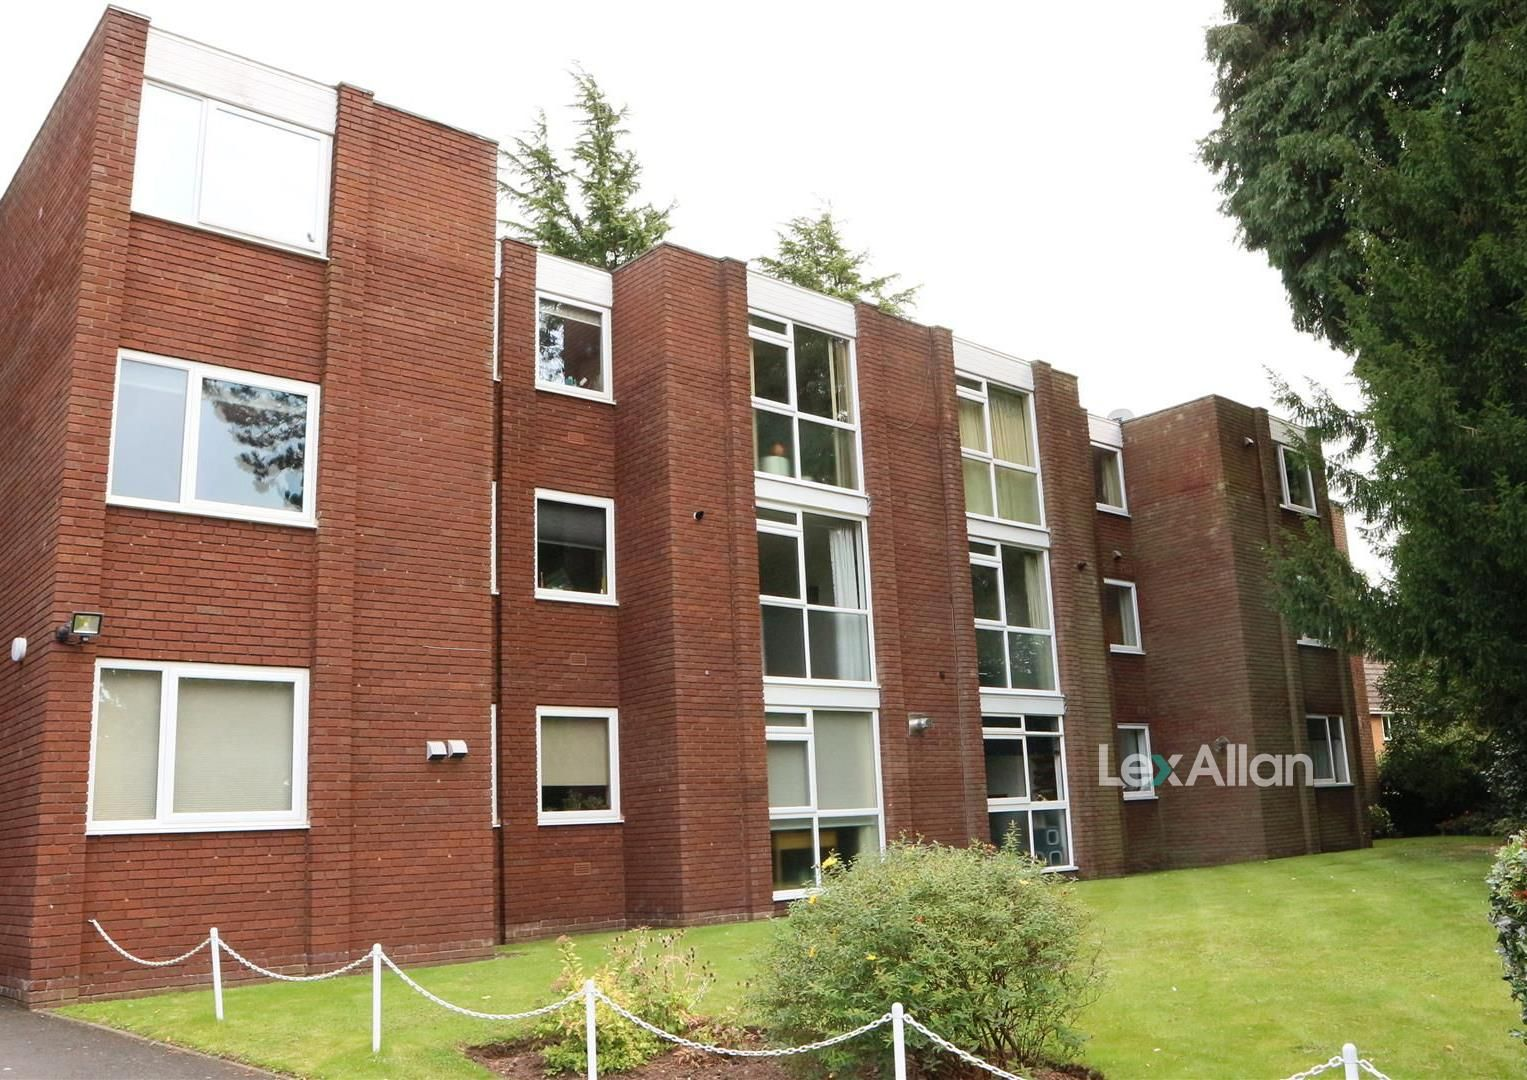 2 bed apartment for sale in Pedmore, DY9